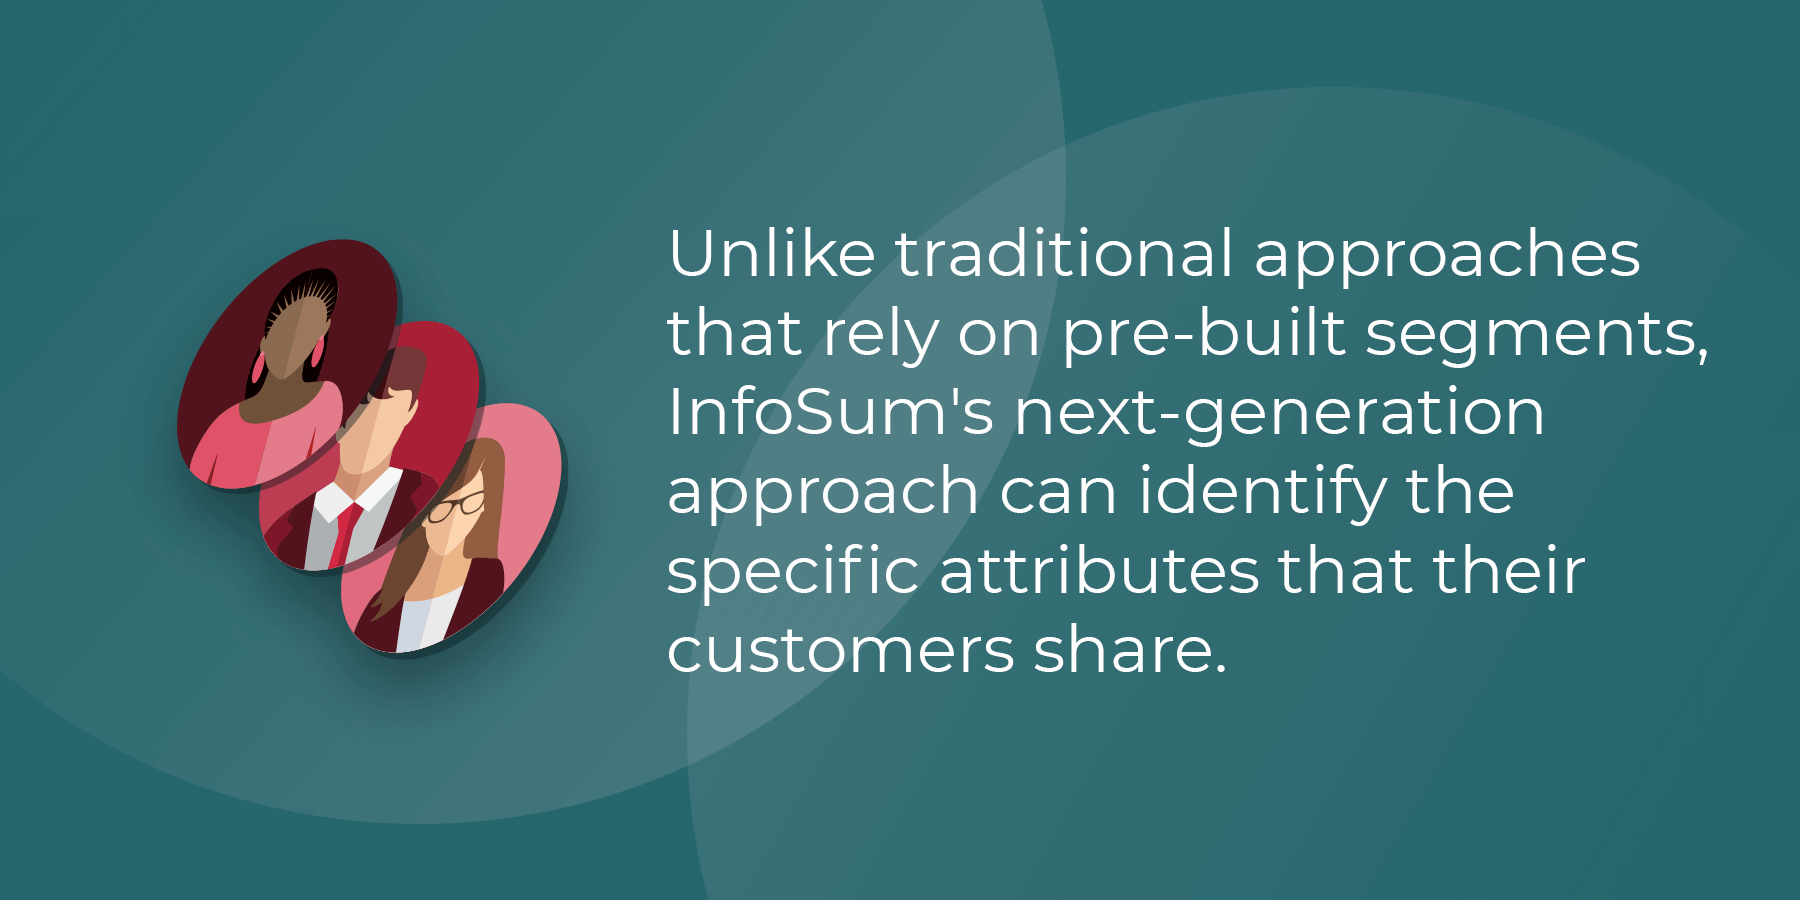 InfoSum's next-generation approach can identify the specific attributes that their customers share